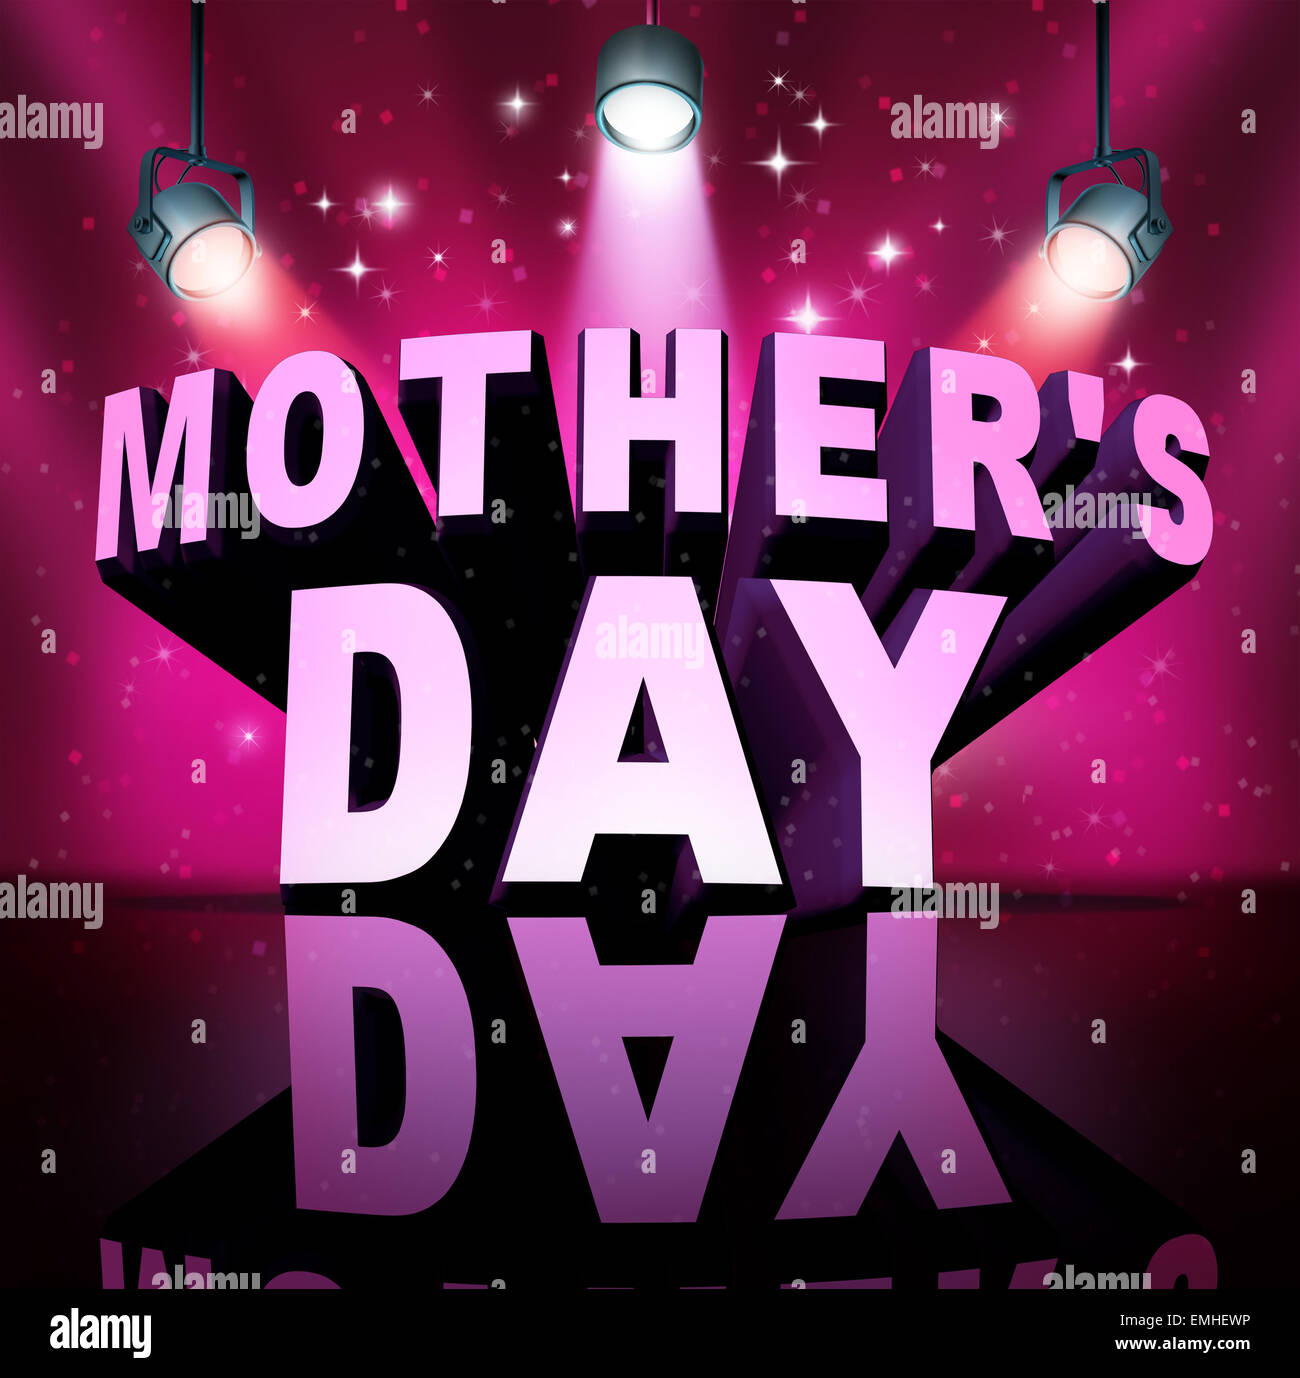 Happy Mothers's day text as three dimensional letters on a stage with bright spot lights as a month of May holiday - Stock Image